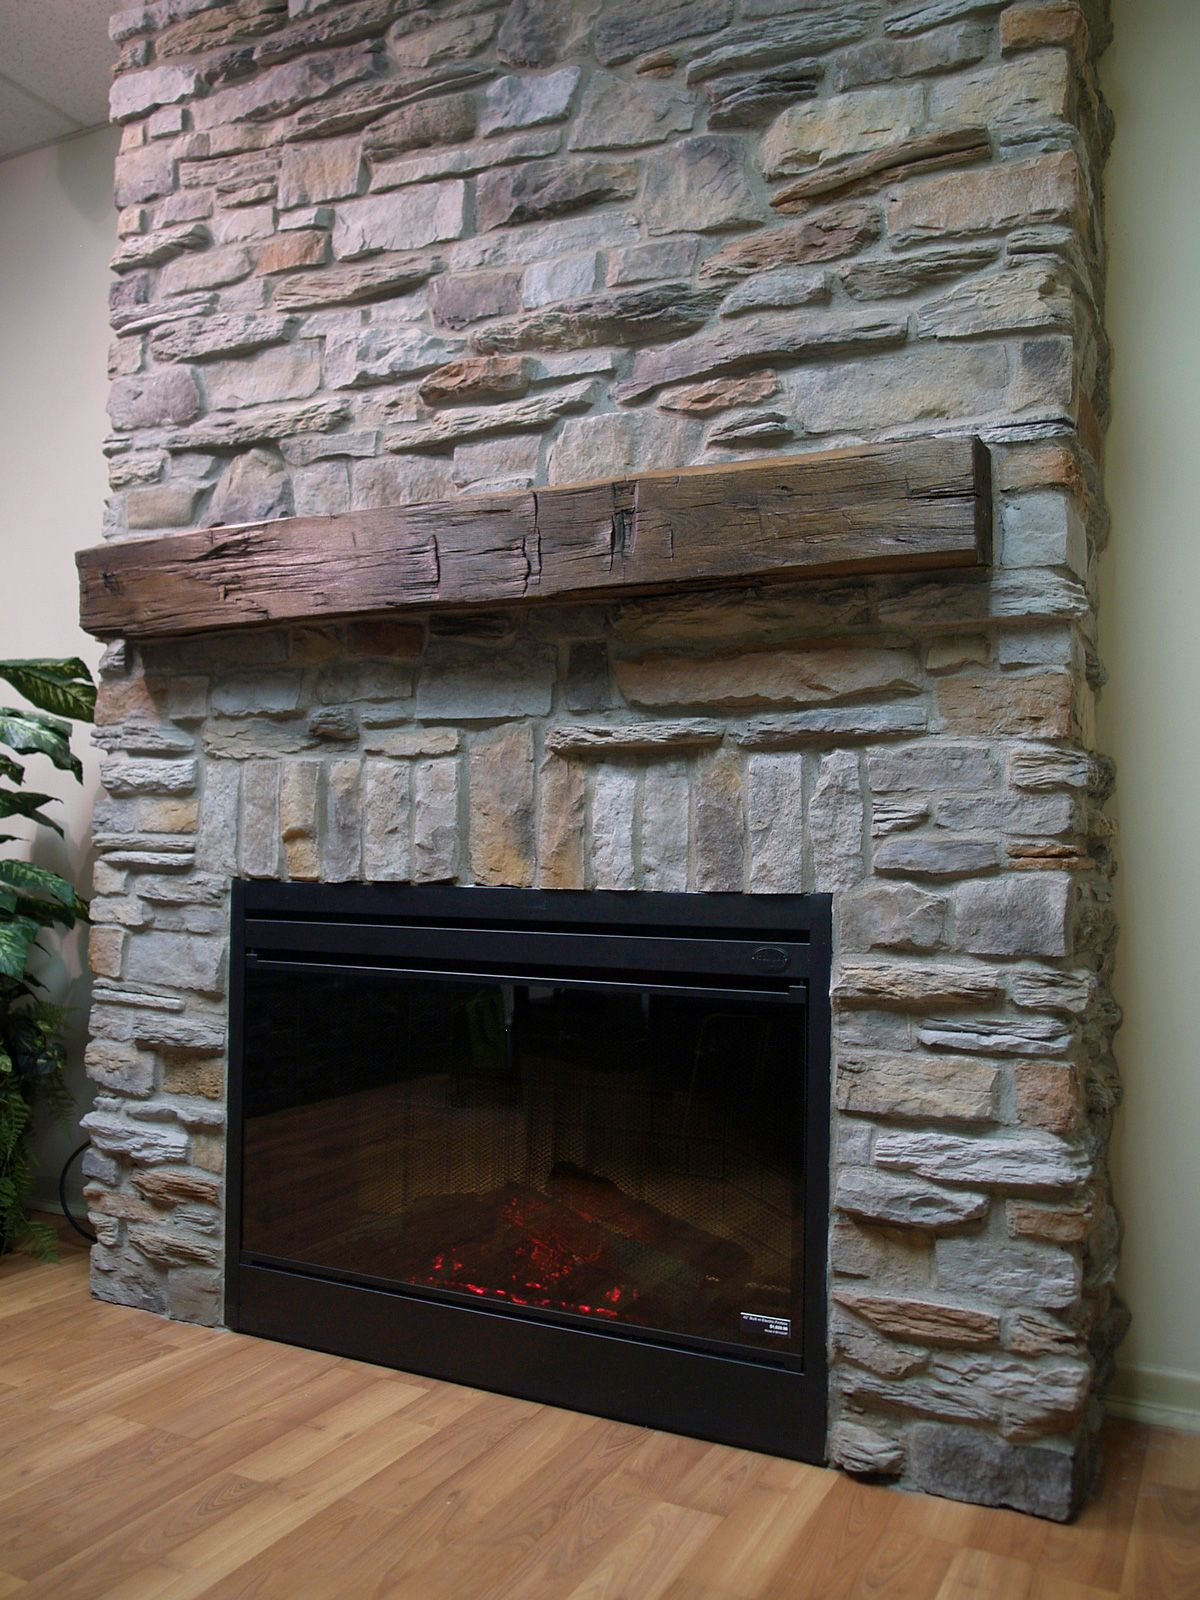 Fireplace hearth stone ideas house pinterest stone - Rockabilly mantel ...